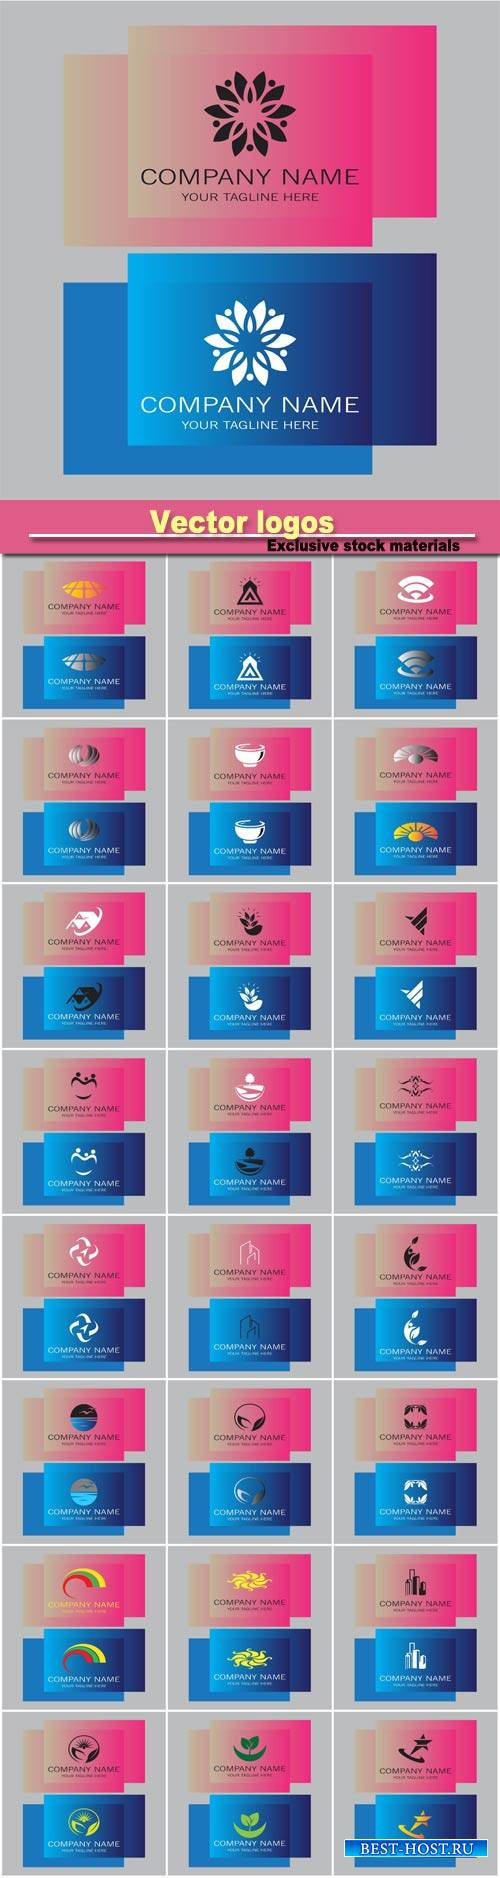 Vector business logos on the pink and blue backgrounds